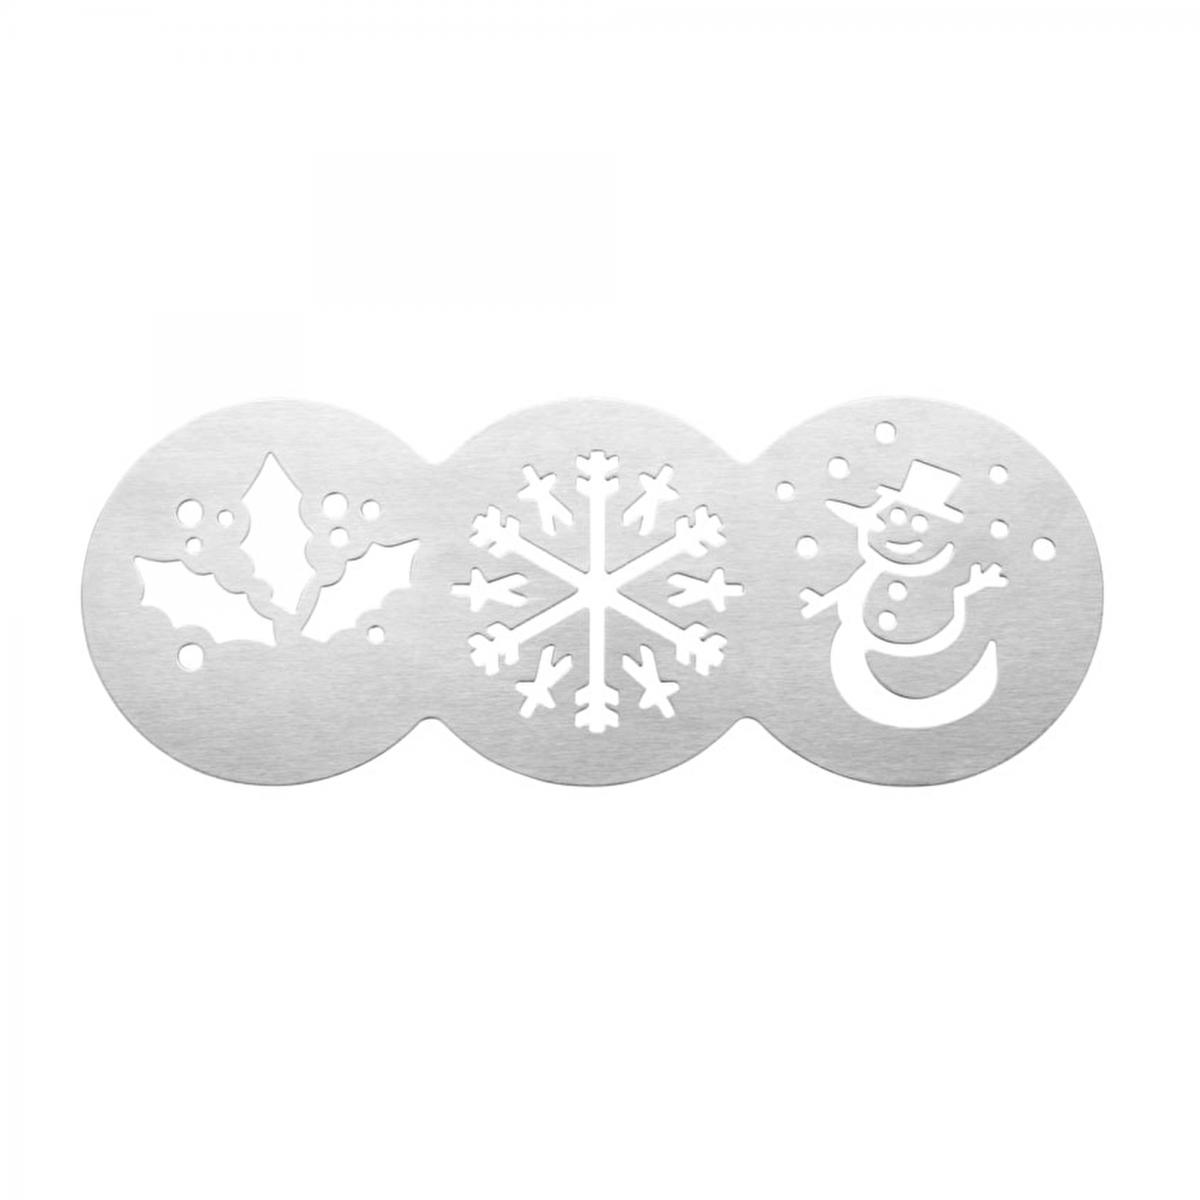 Christmas Cake Stencils - 3 designs – Now Only £1.00